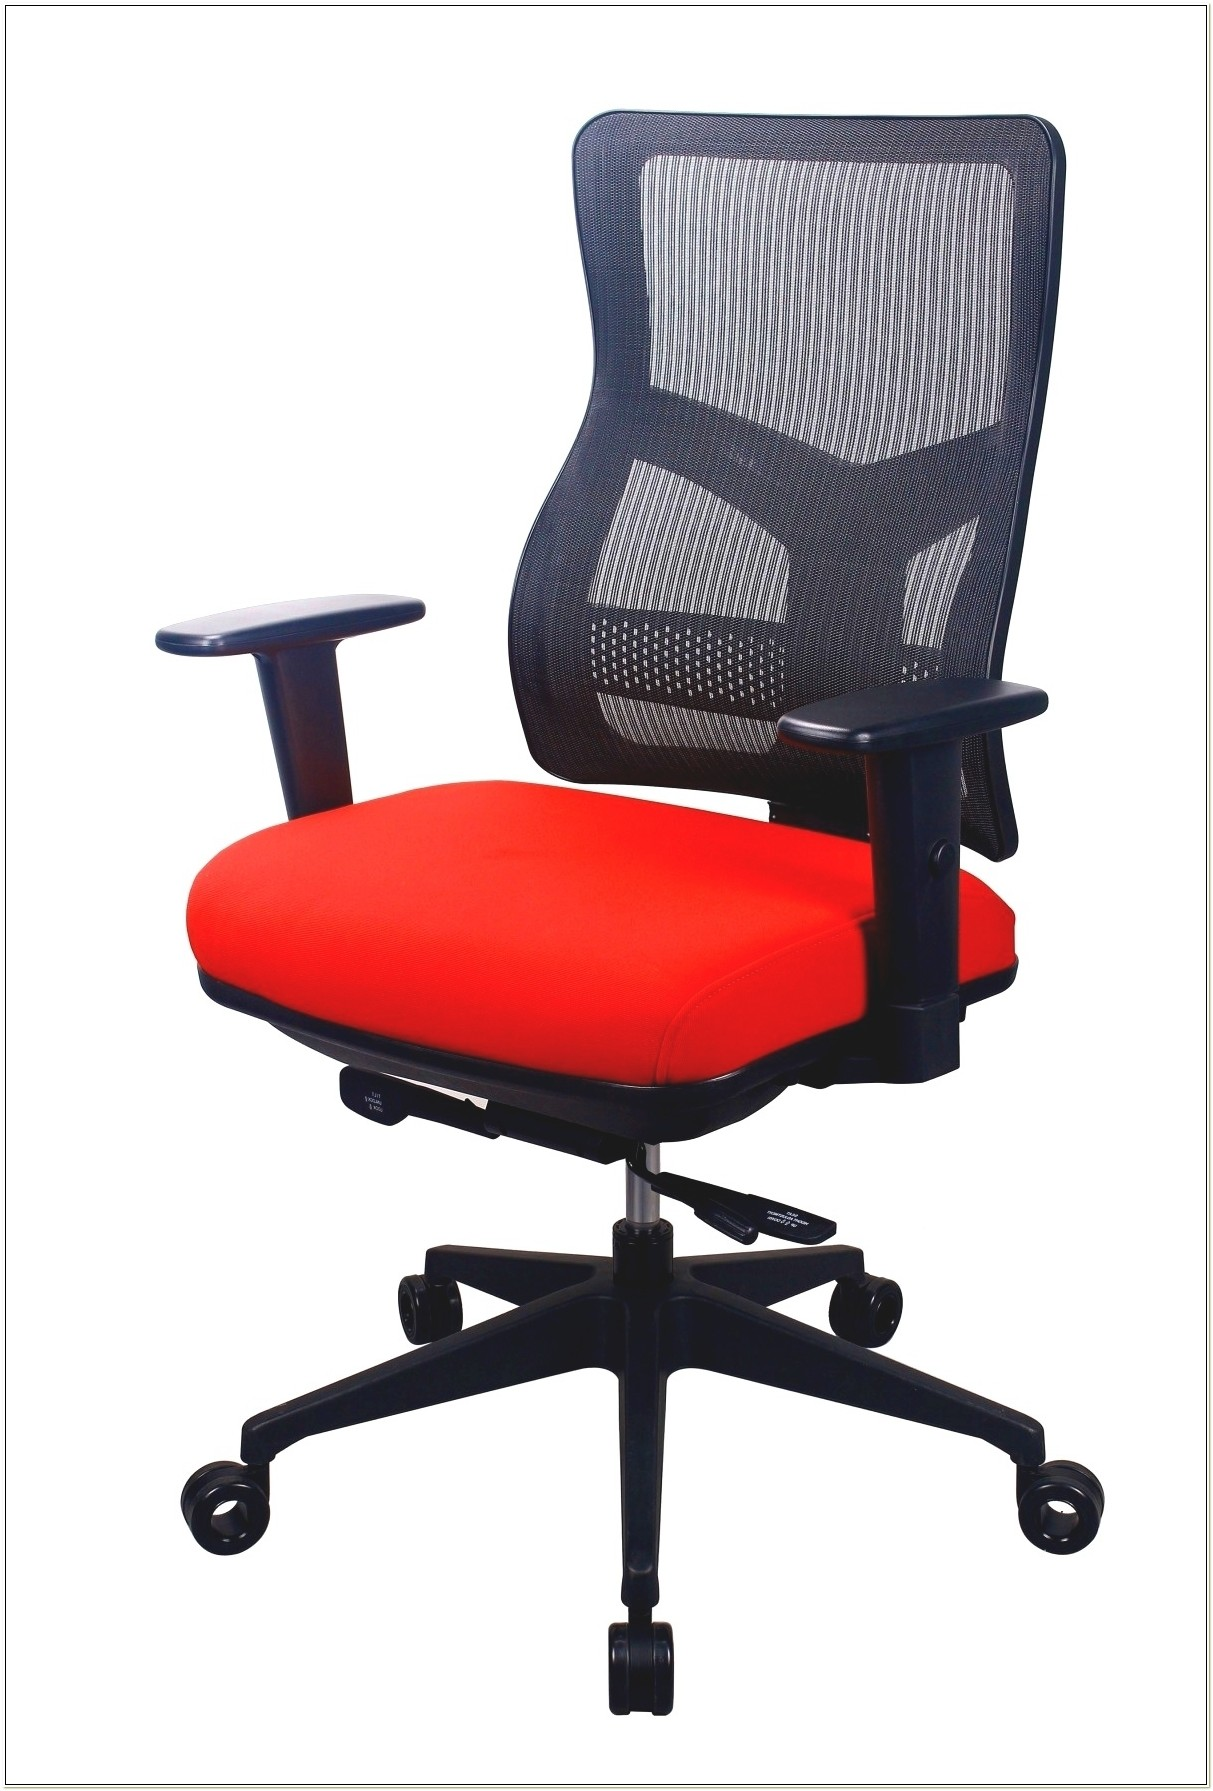 Tempur Pedic Office Chair Manual